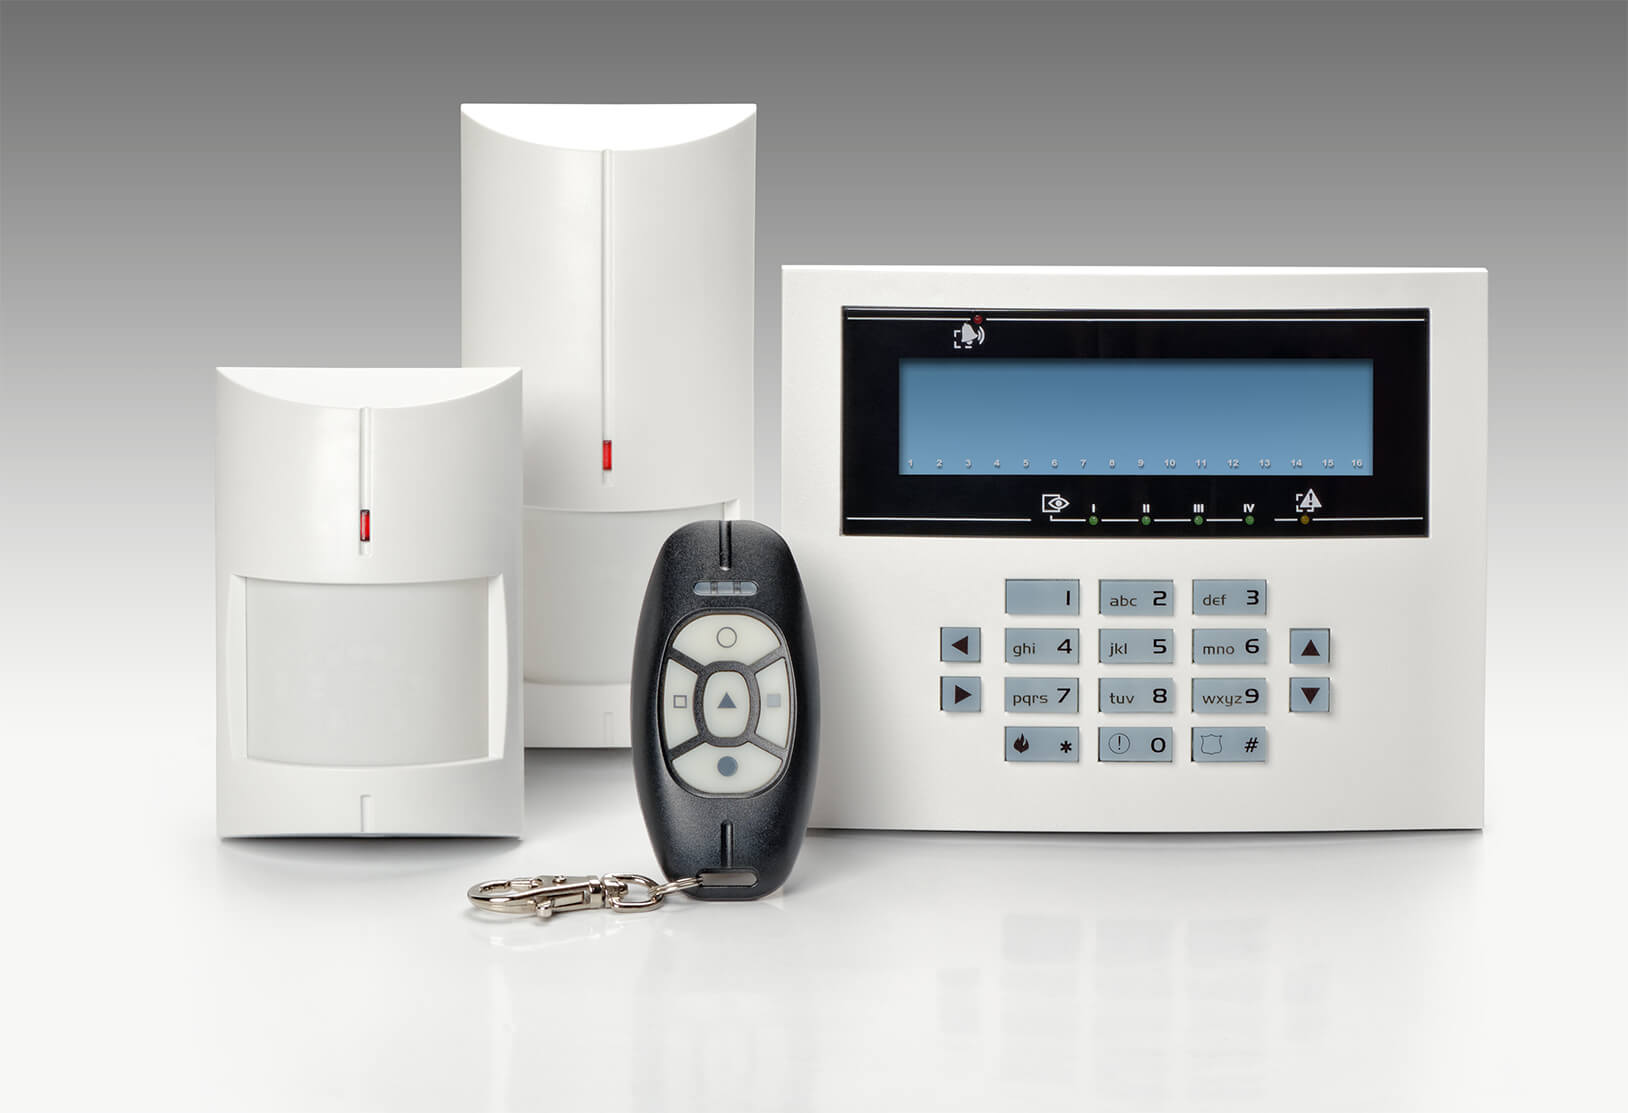 Business & Residential NACOSS Approved Burglar Alarms In Chelsea SW3 - Local Chelsea SW3 security company.Call 02078872244 - Dedicated to Safety & Security. Companies, shops and homes ..